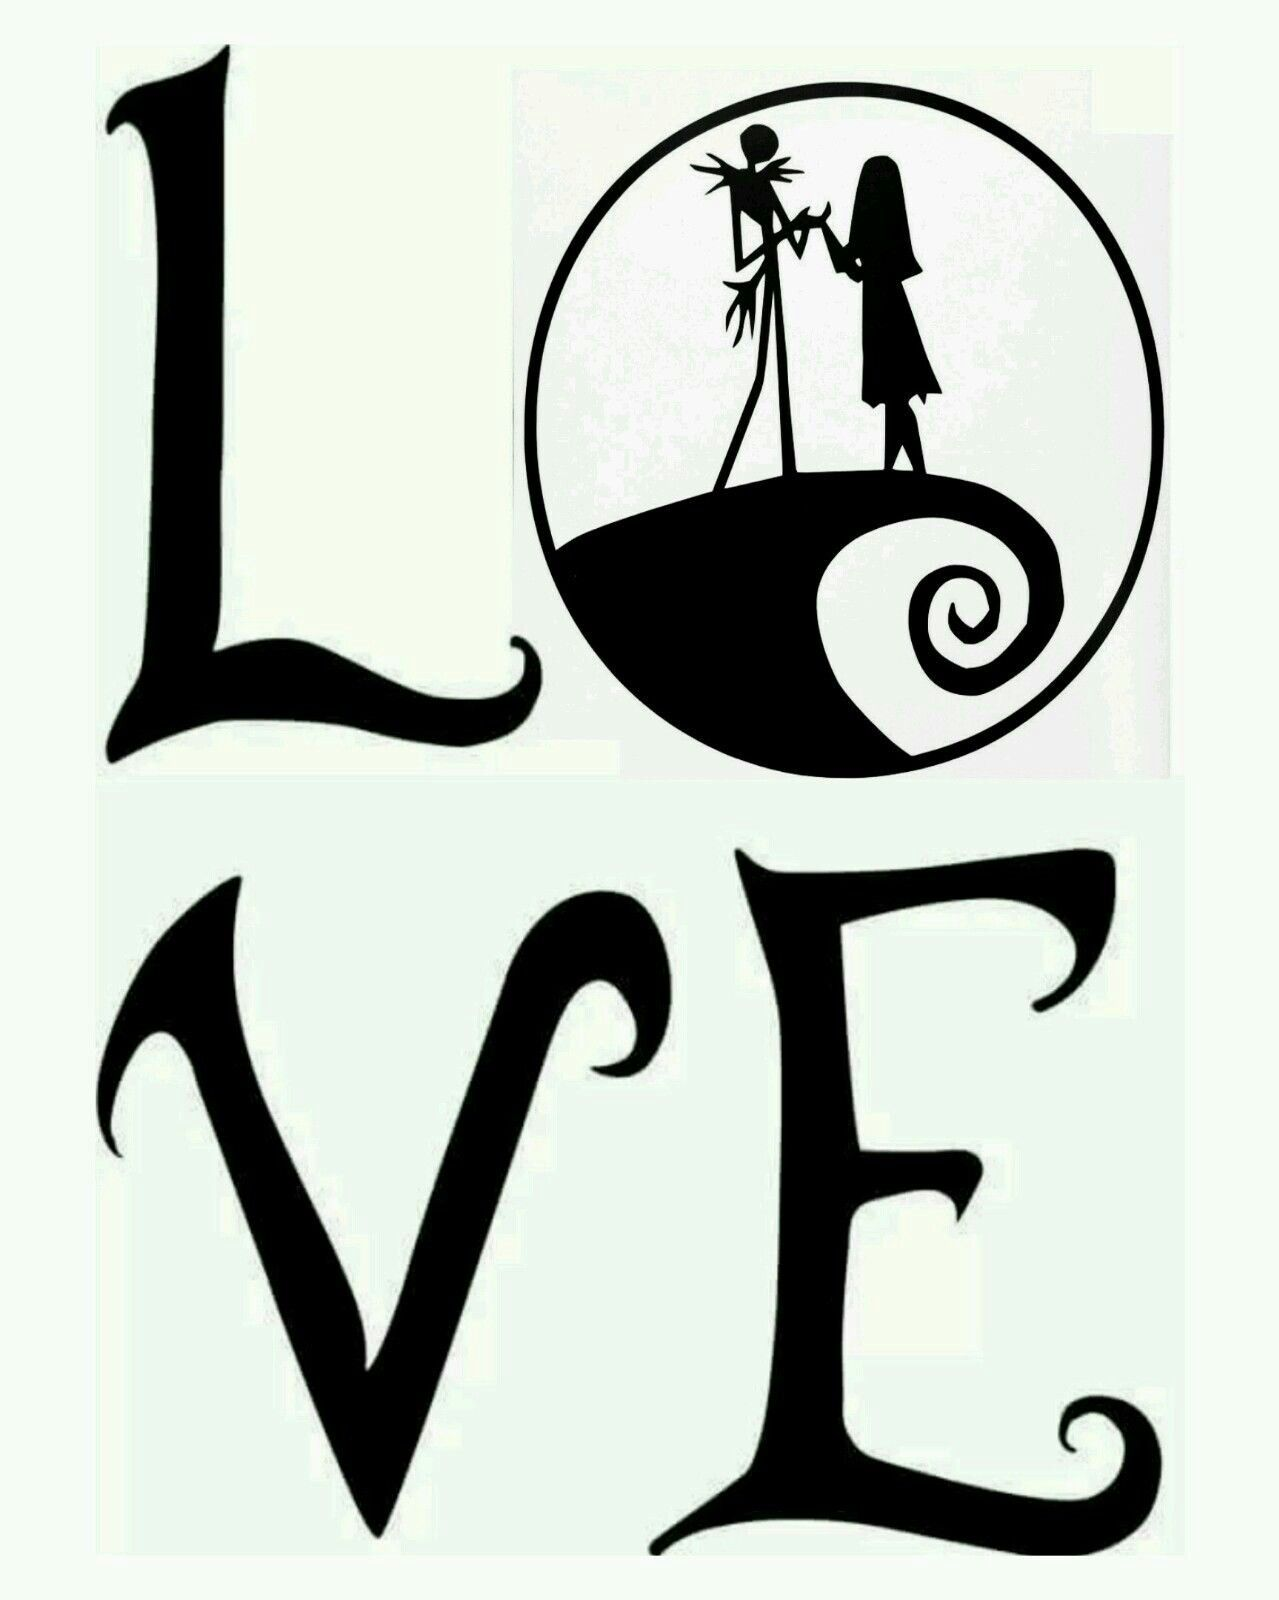 Sally Nightmare Before Christmas Silhouette | www.topsimages.com